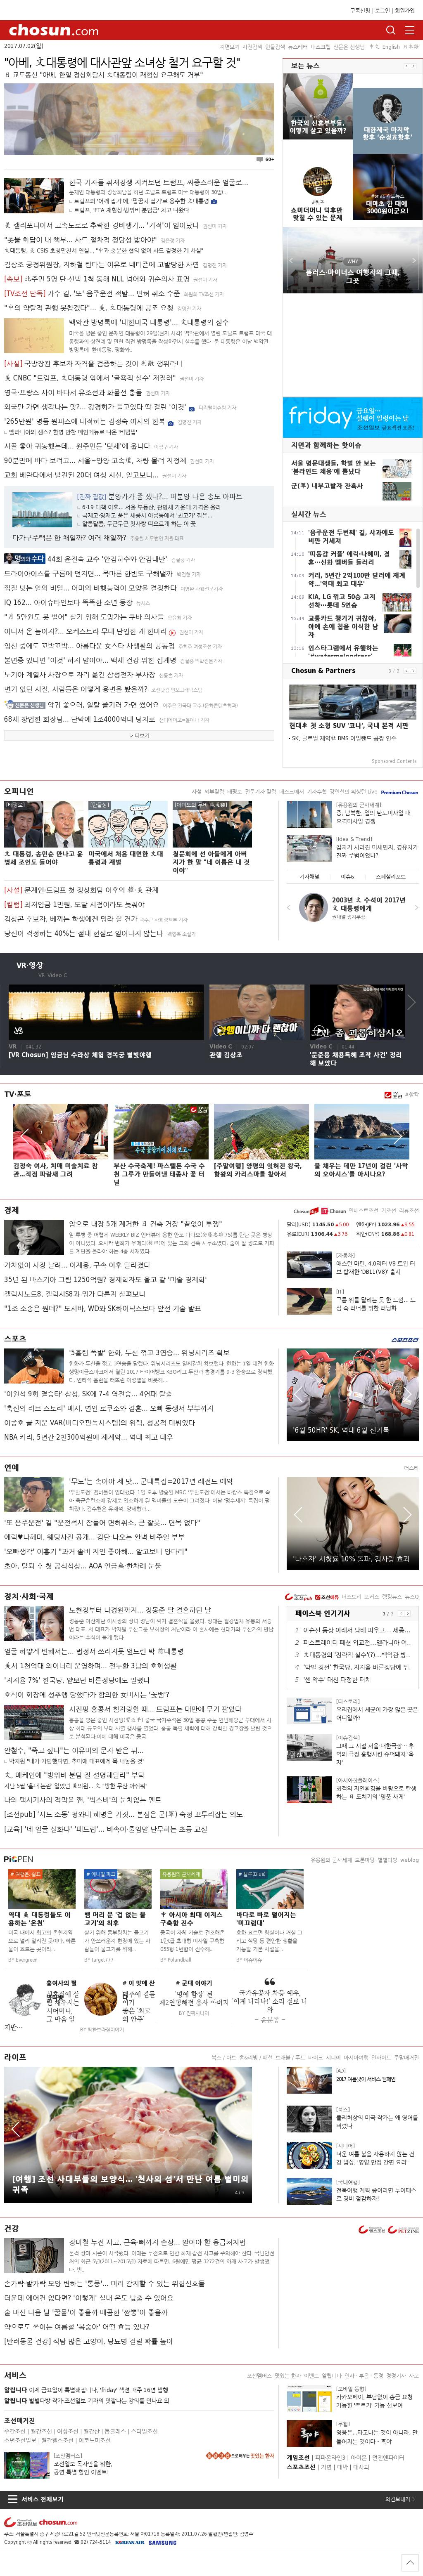 chosun.com at Saturday July 1, 2017, 5:02 p.m. UTC